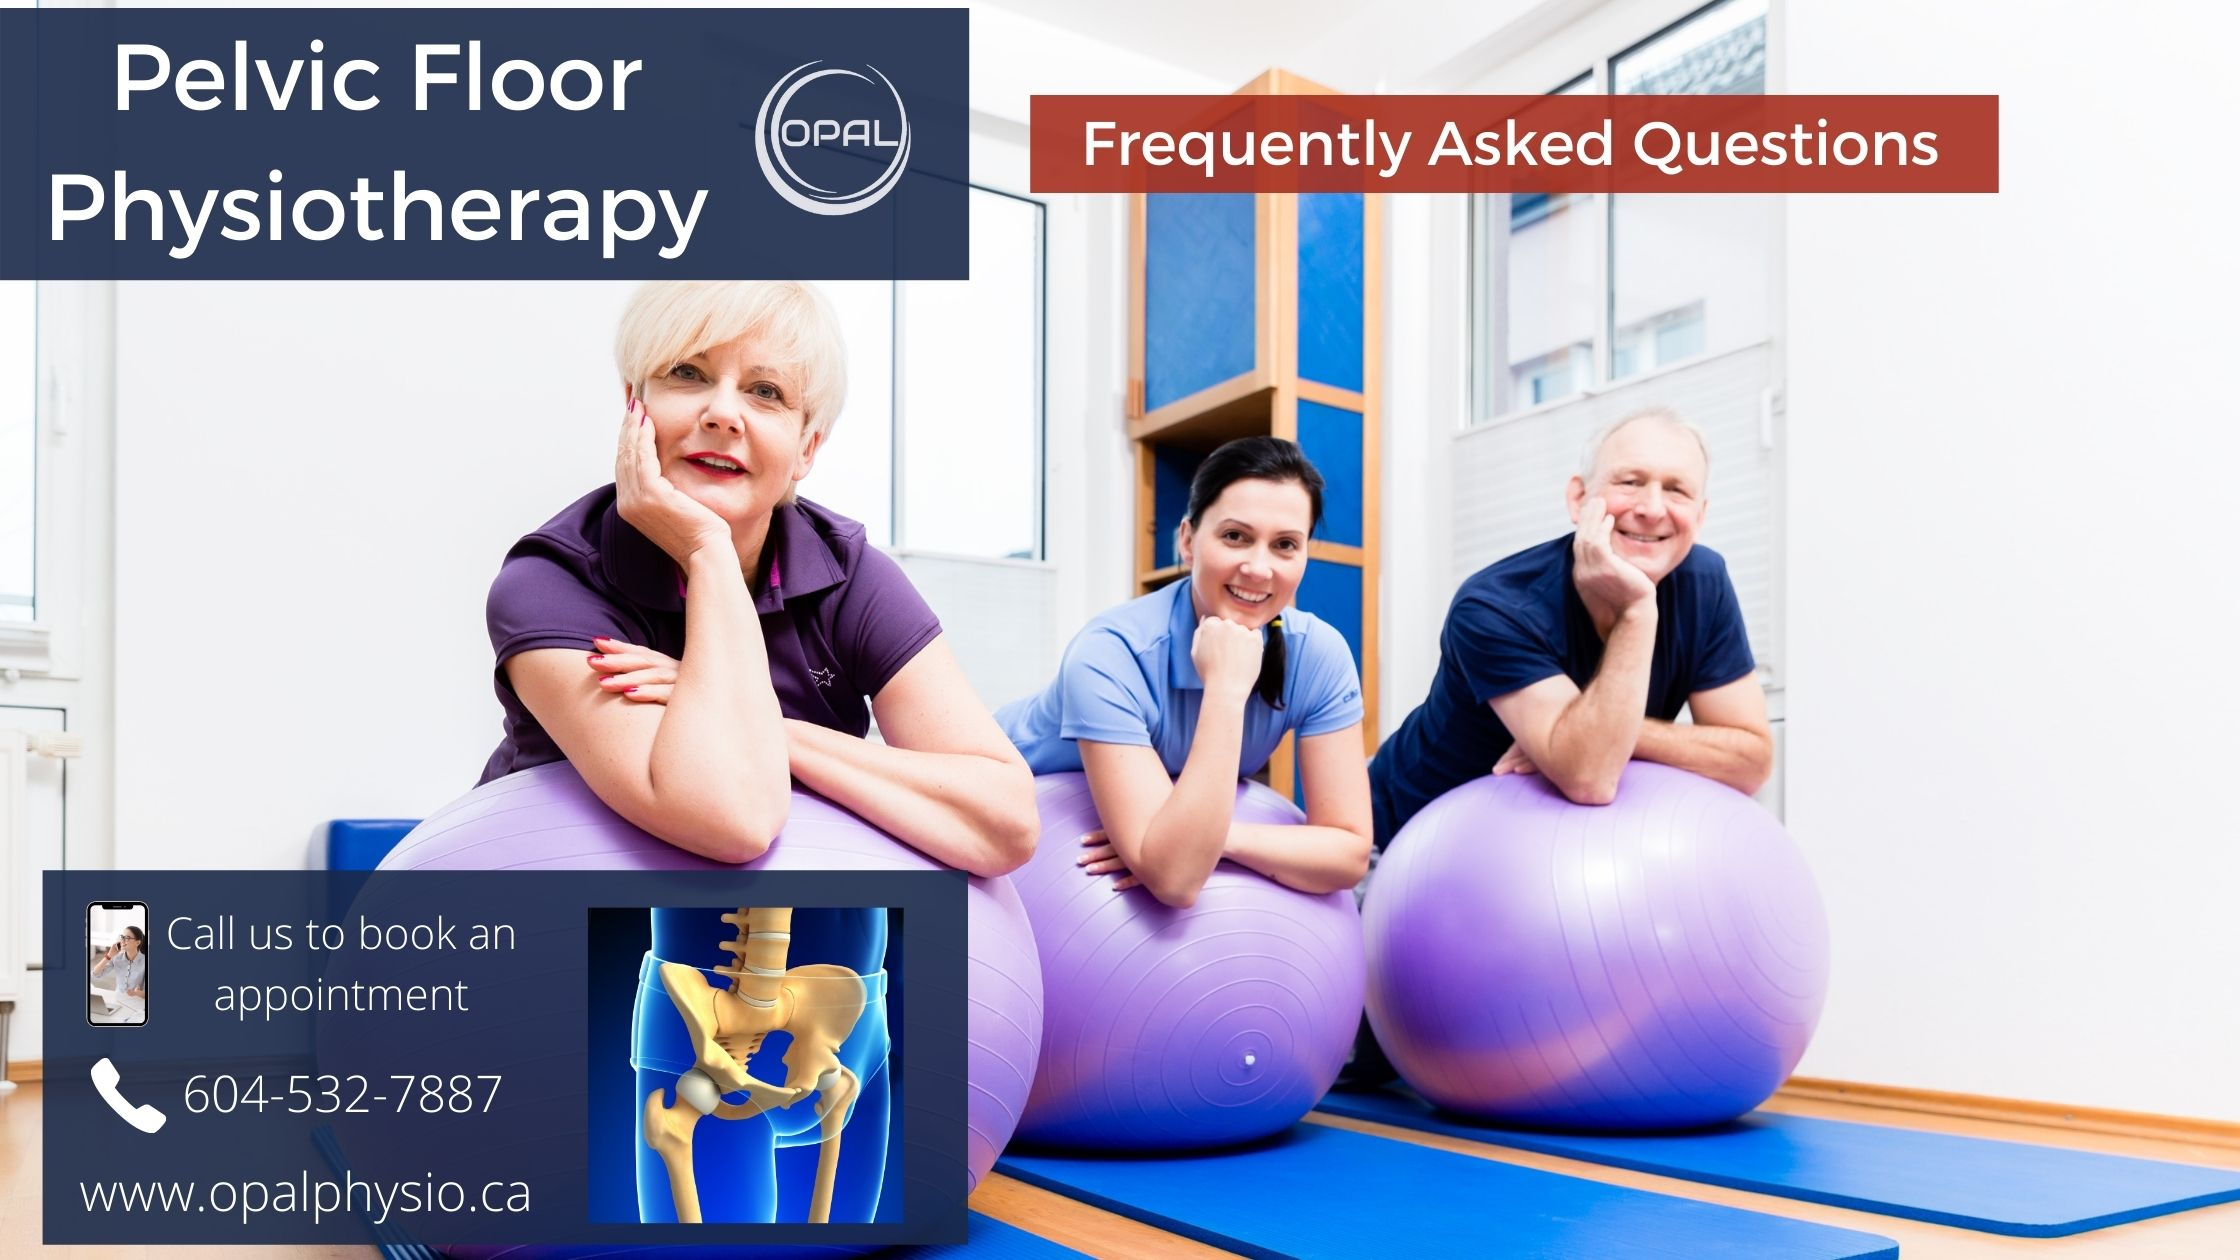 Pelvic Floor Physiotherapy - Frequently Asked Questions(FAQ)